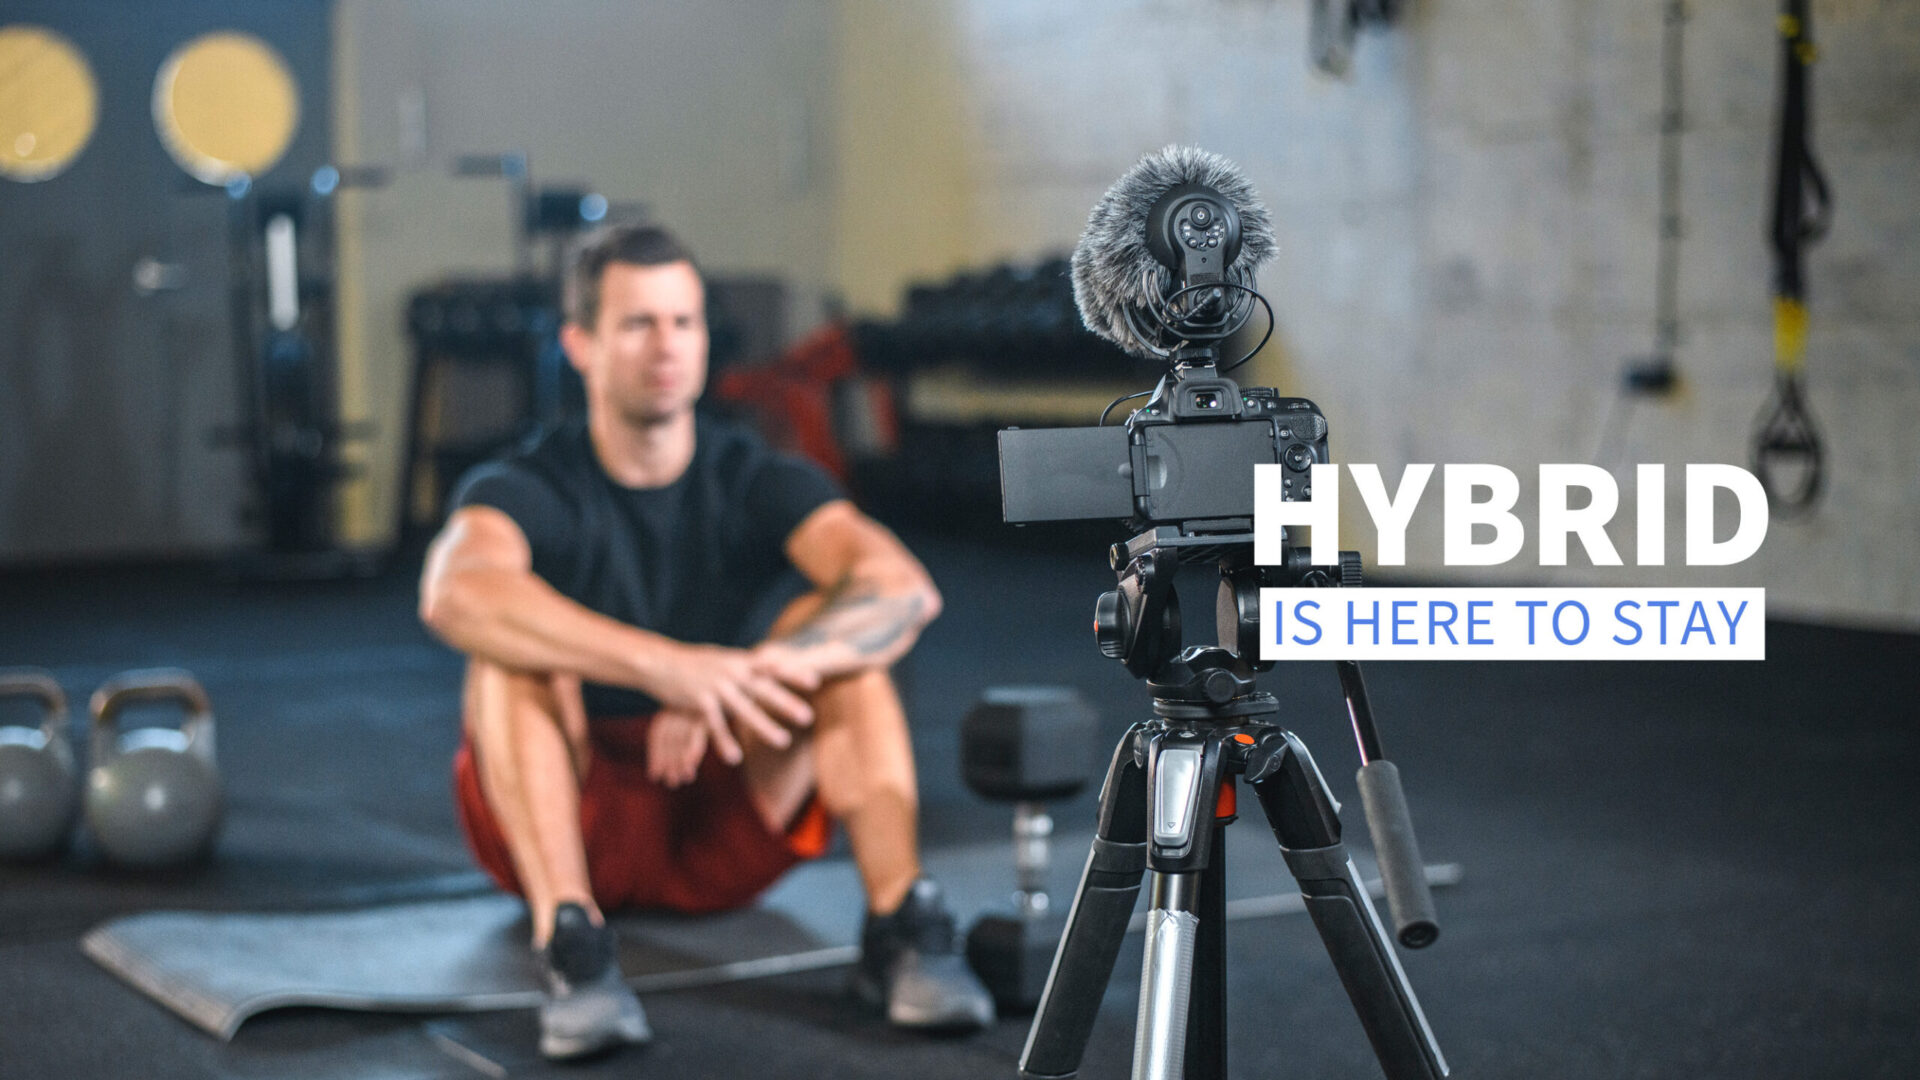 Hybrid is here to stay